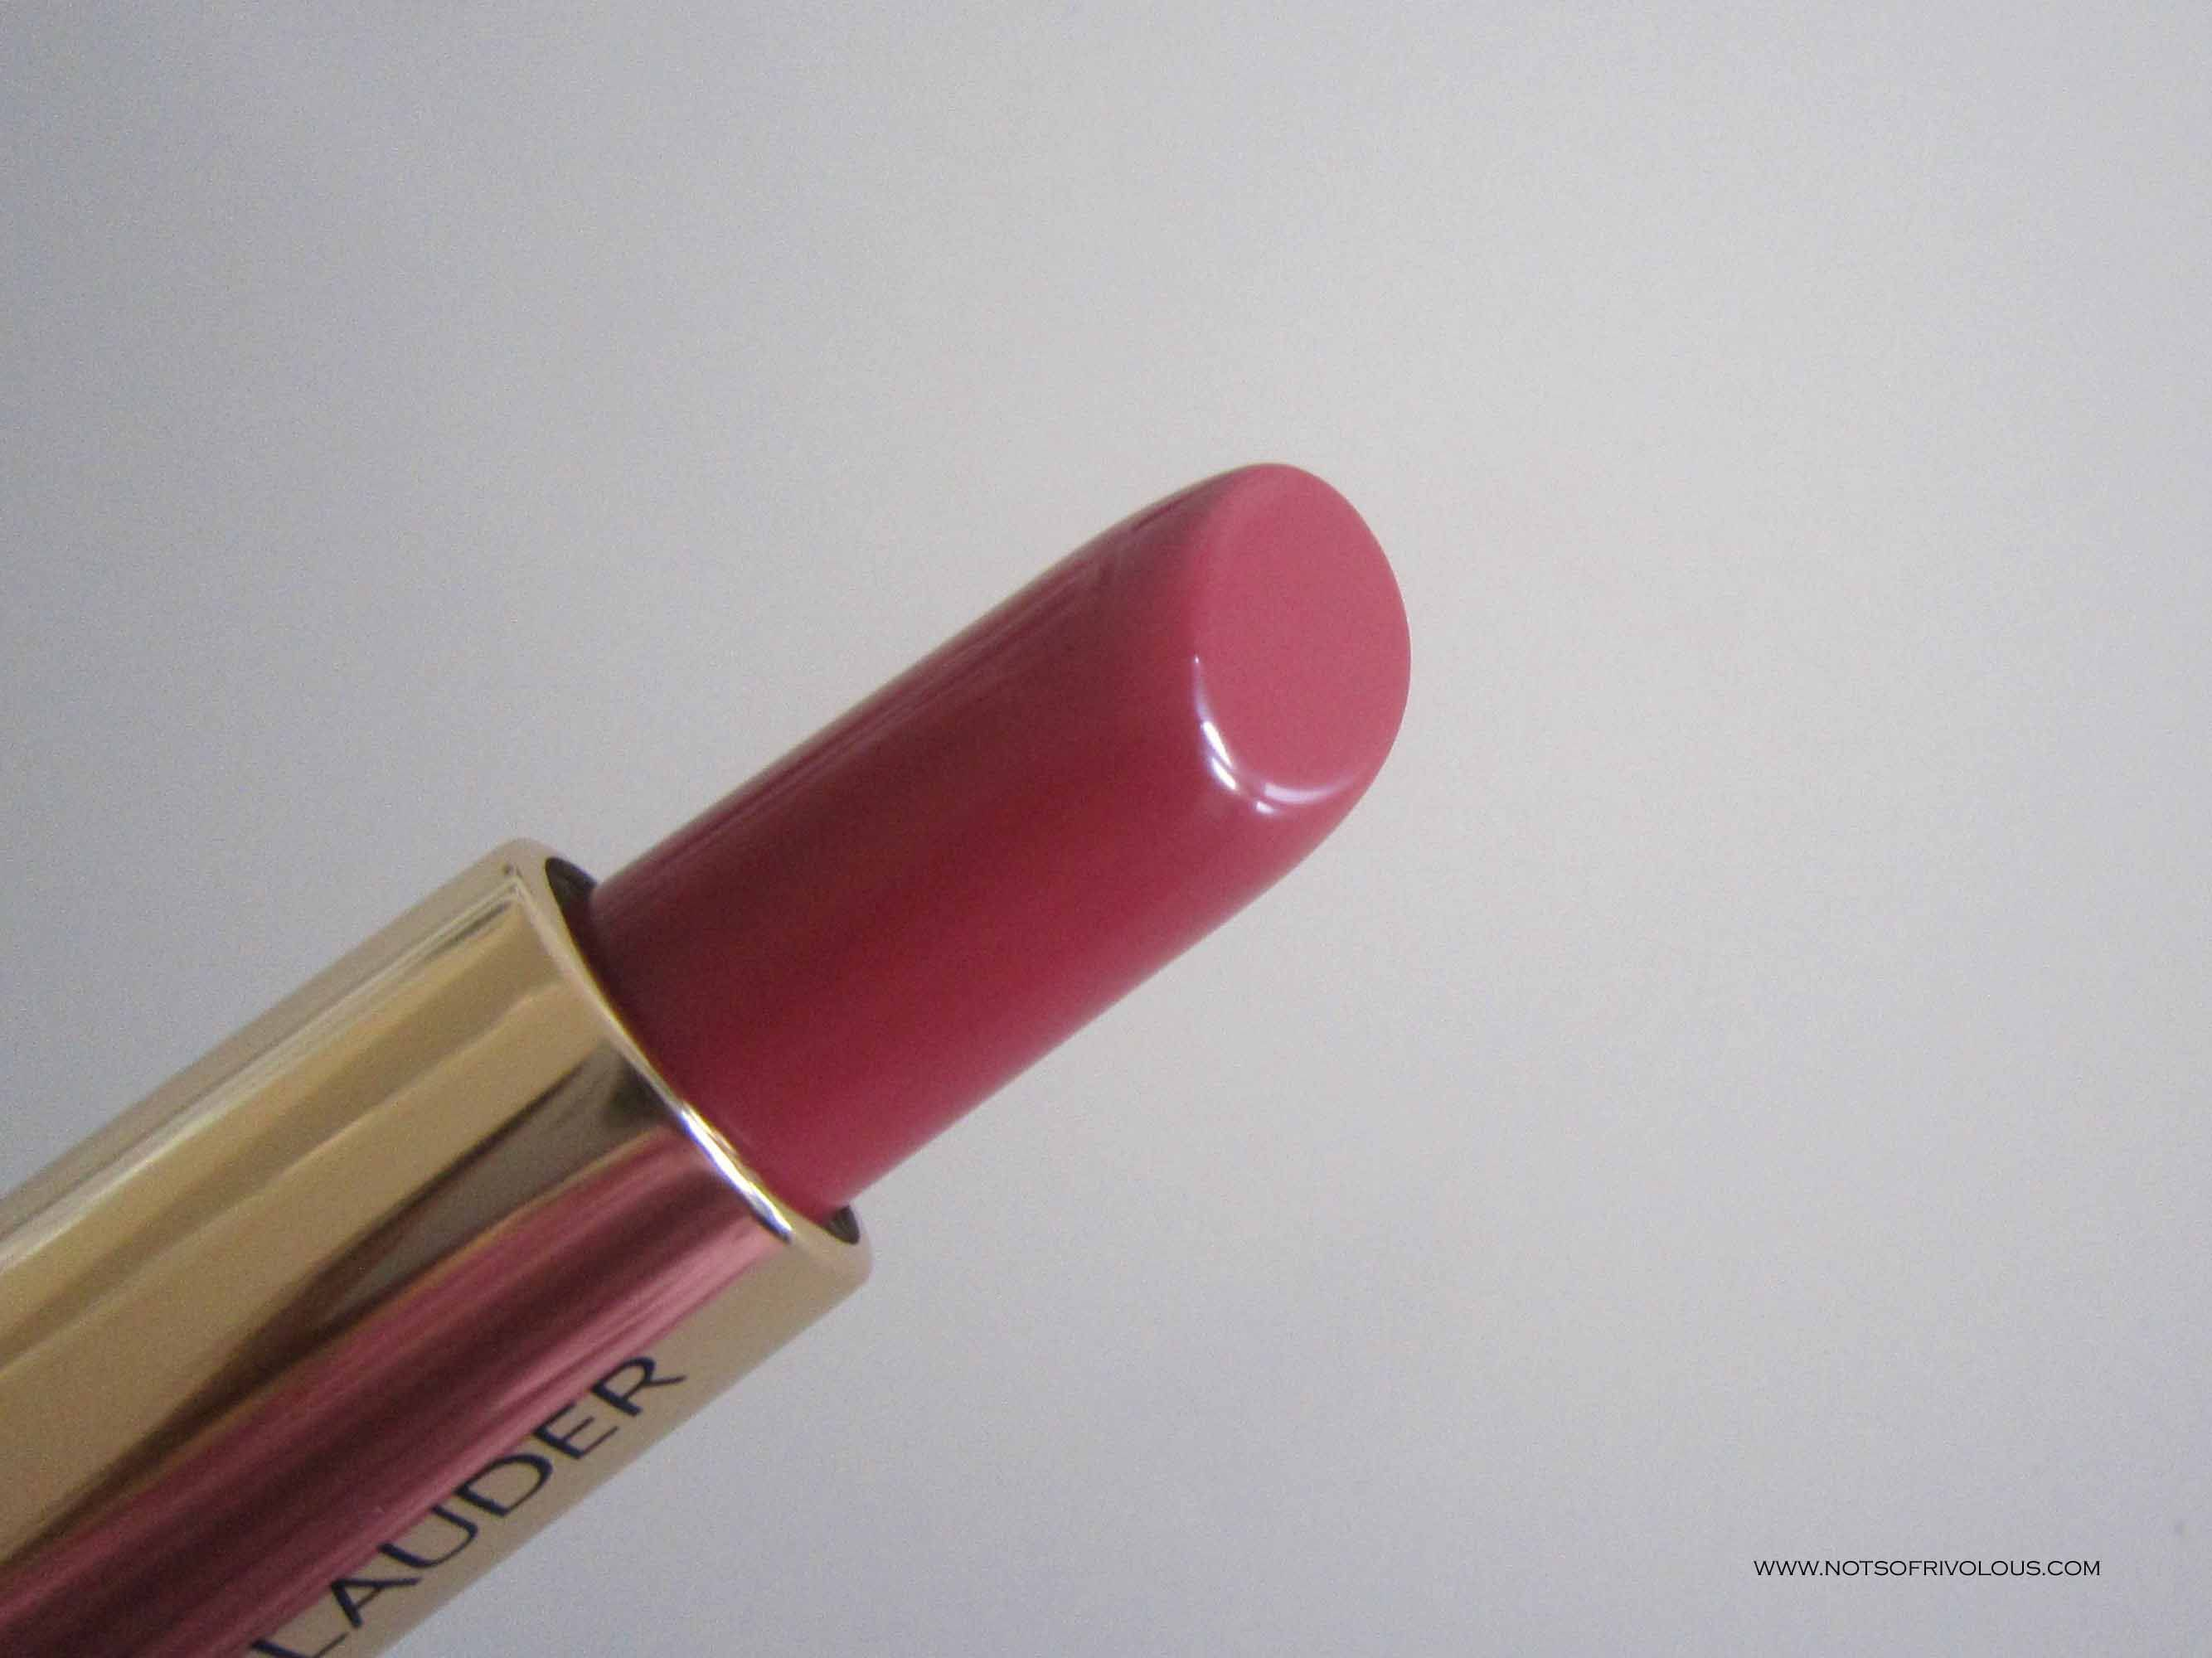 Estée Lauder Pure Color Envy Sculpting Lipstick In Rebellious Rose 420 Defiant Coral 3 Estee Lauder Pure Color Envy Pure Color Envy Estee Lauder Pure Color